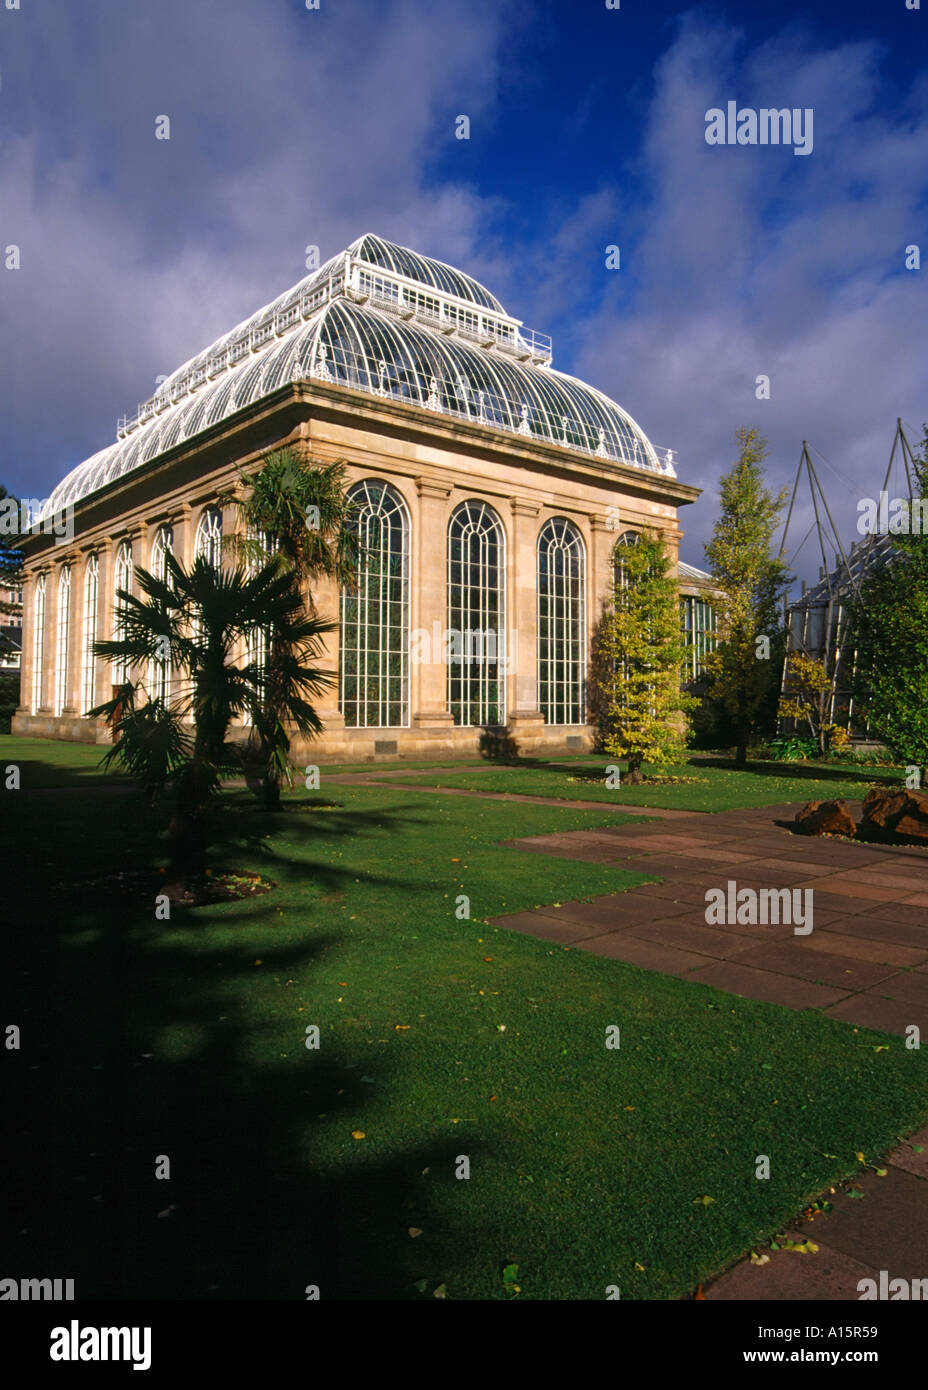 dh  ROYAL BOTANIC GARDEN EDINBURGH Palm tree glasshouse uk greenhouse gardens botanical - Stock Image